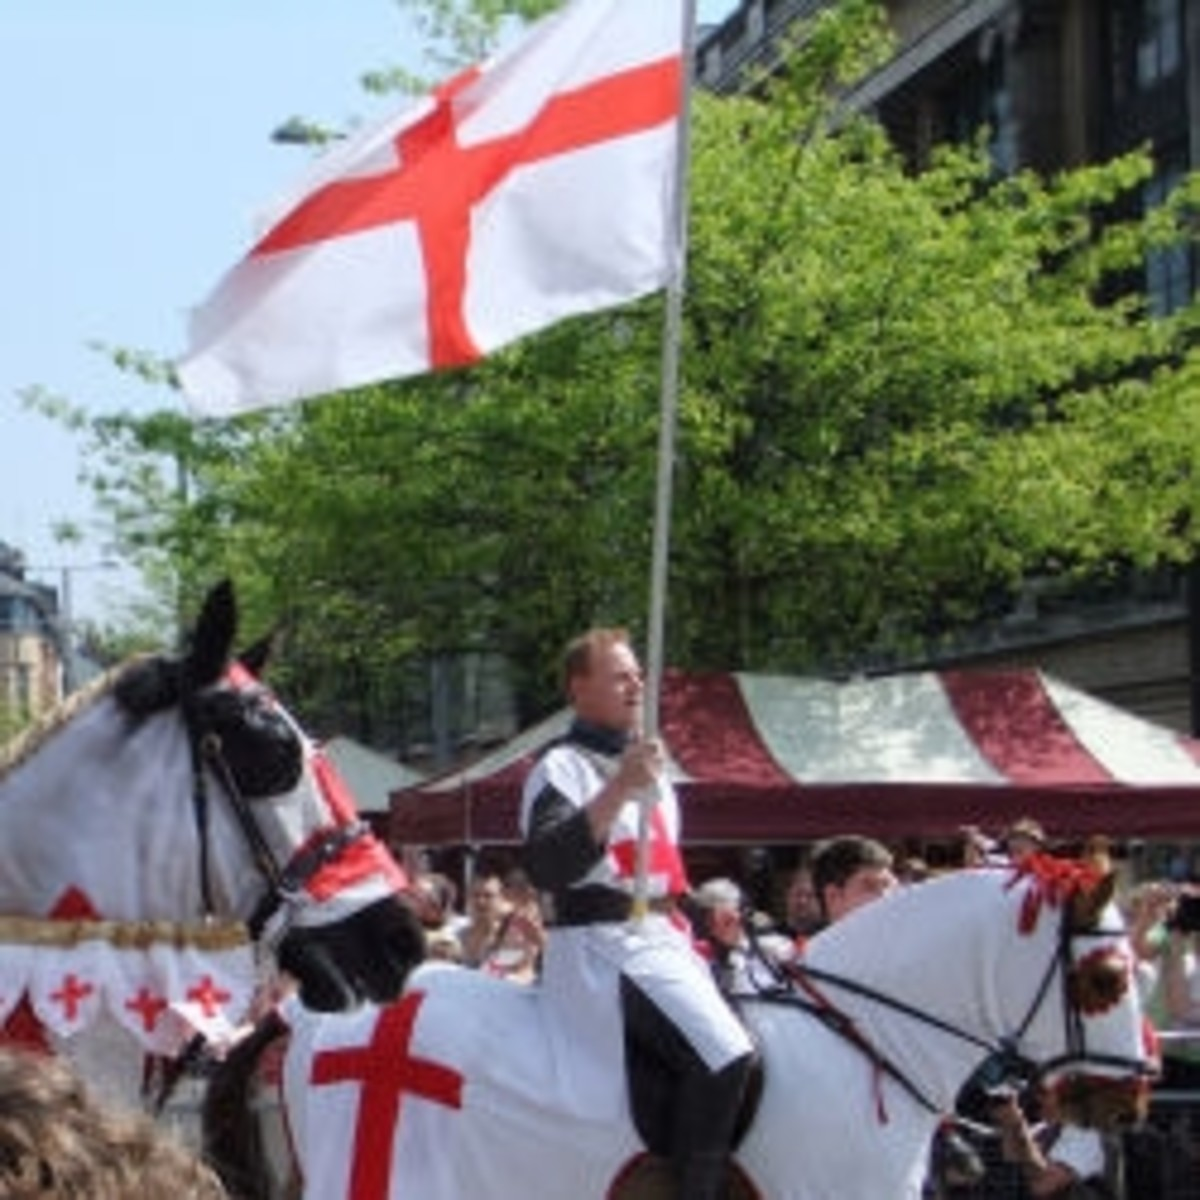 St George - Patron Saint Of England